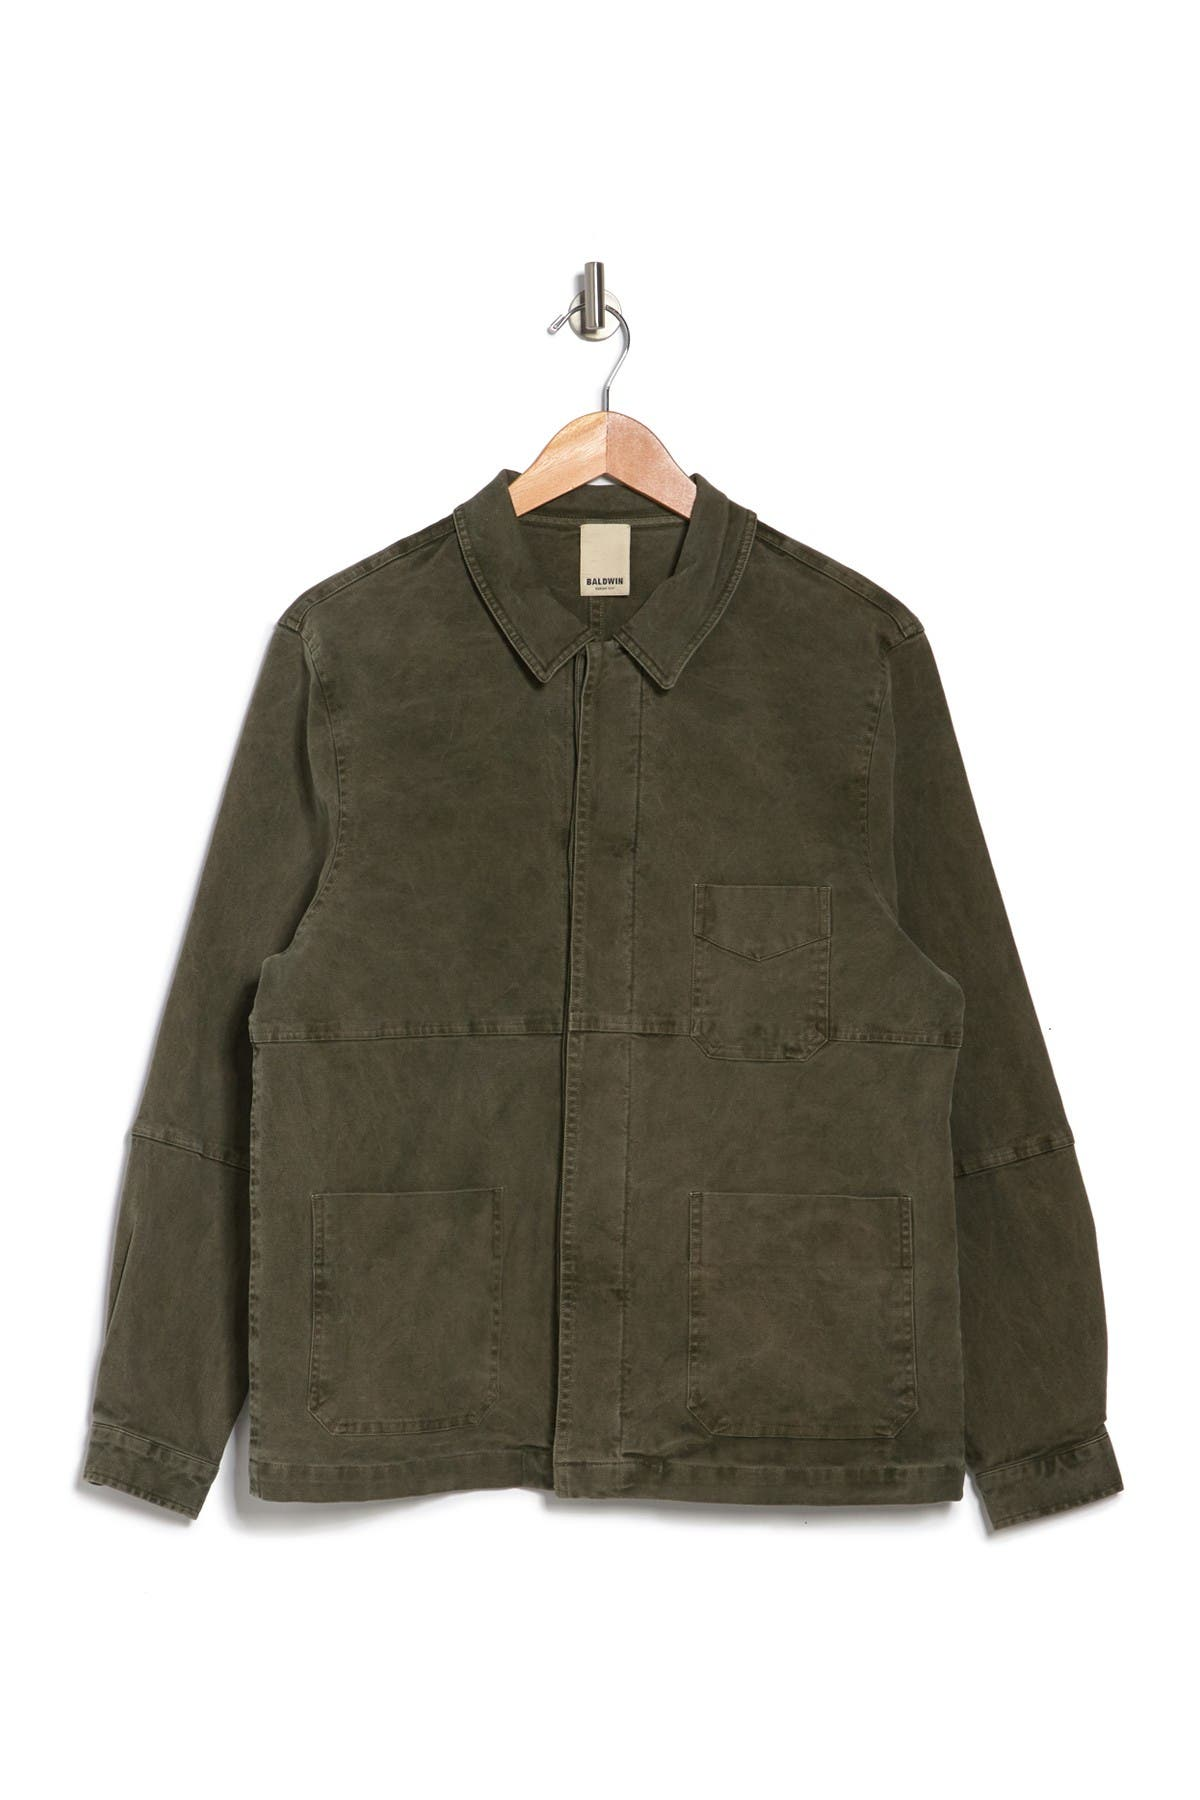 Image of BALDWIN Bowens Jacket